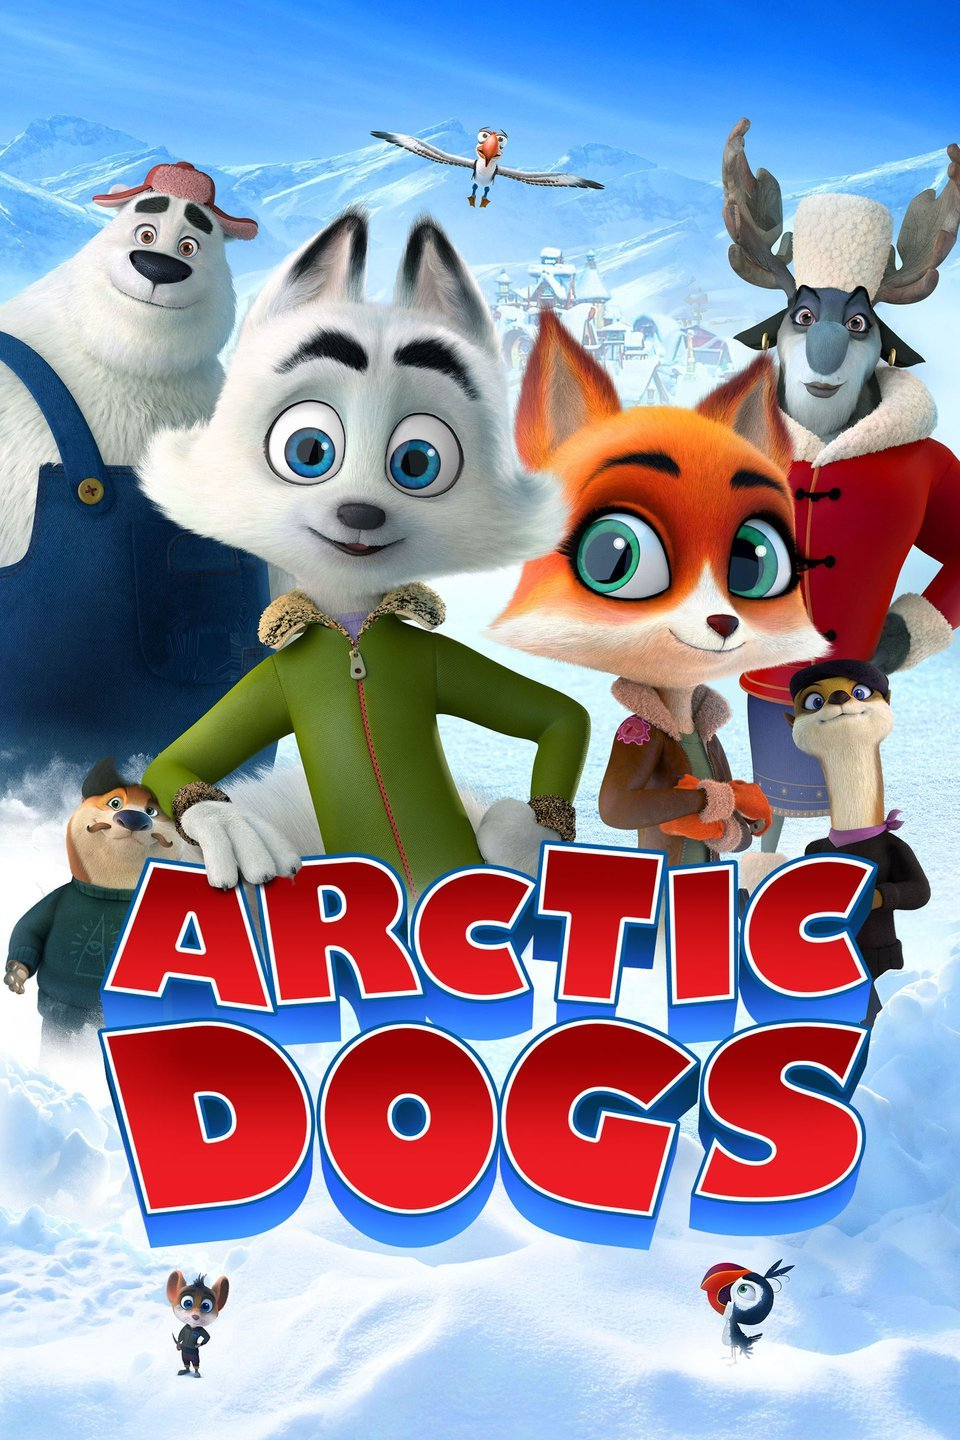 Image of Arctic Dogs movie cover